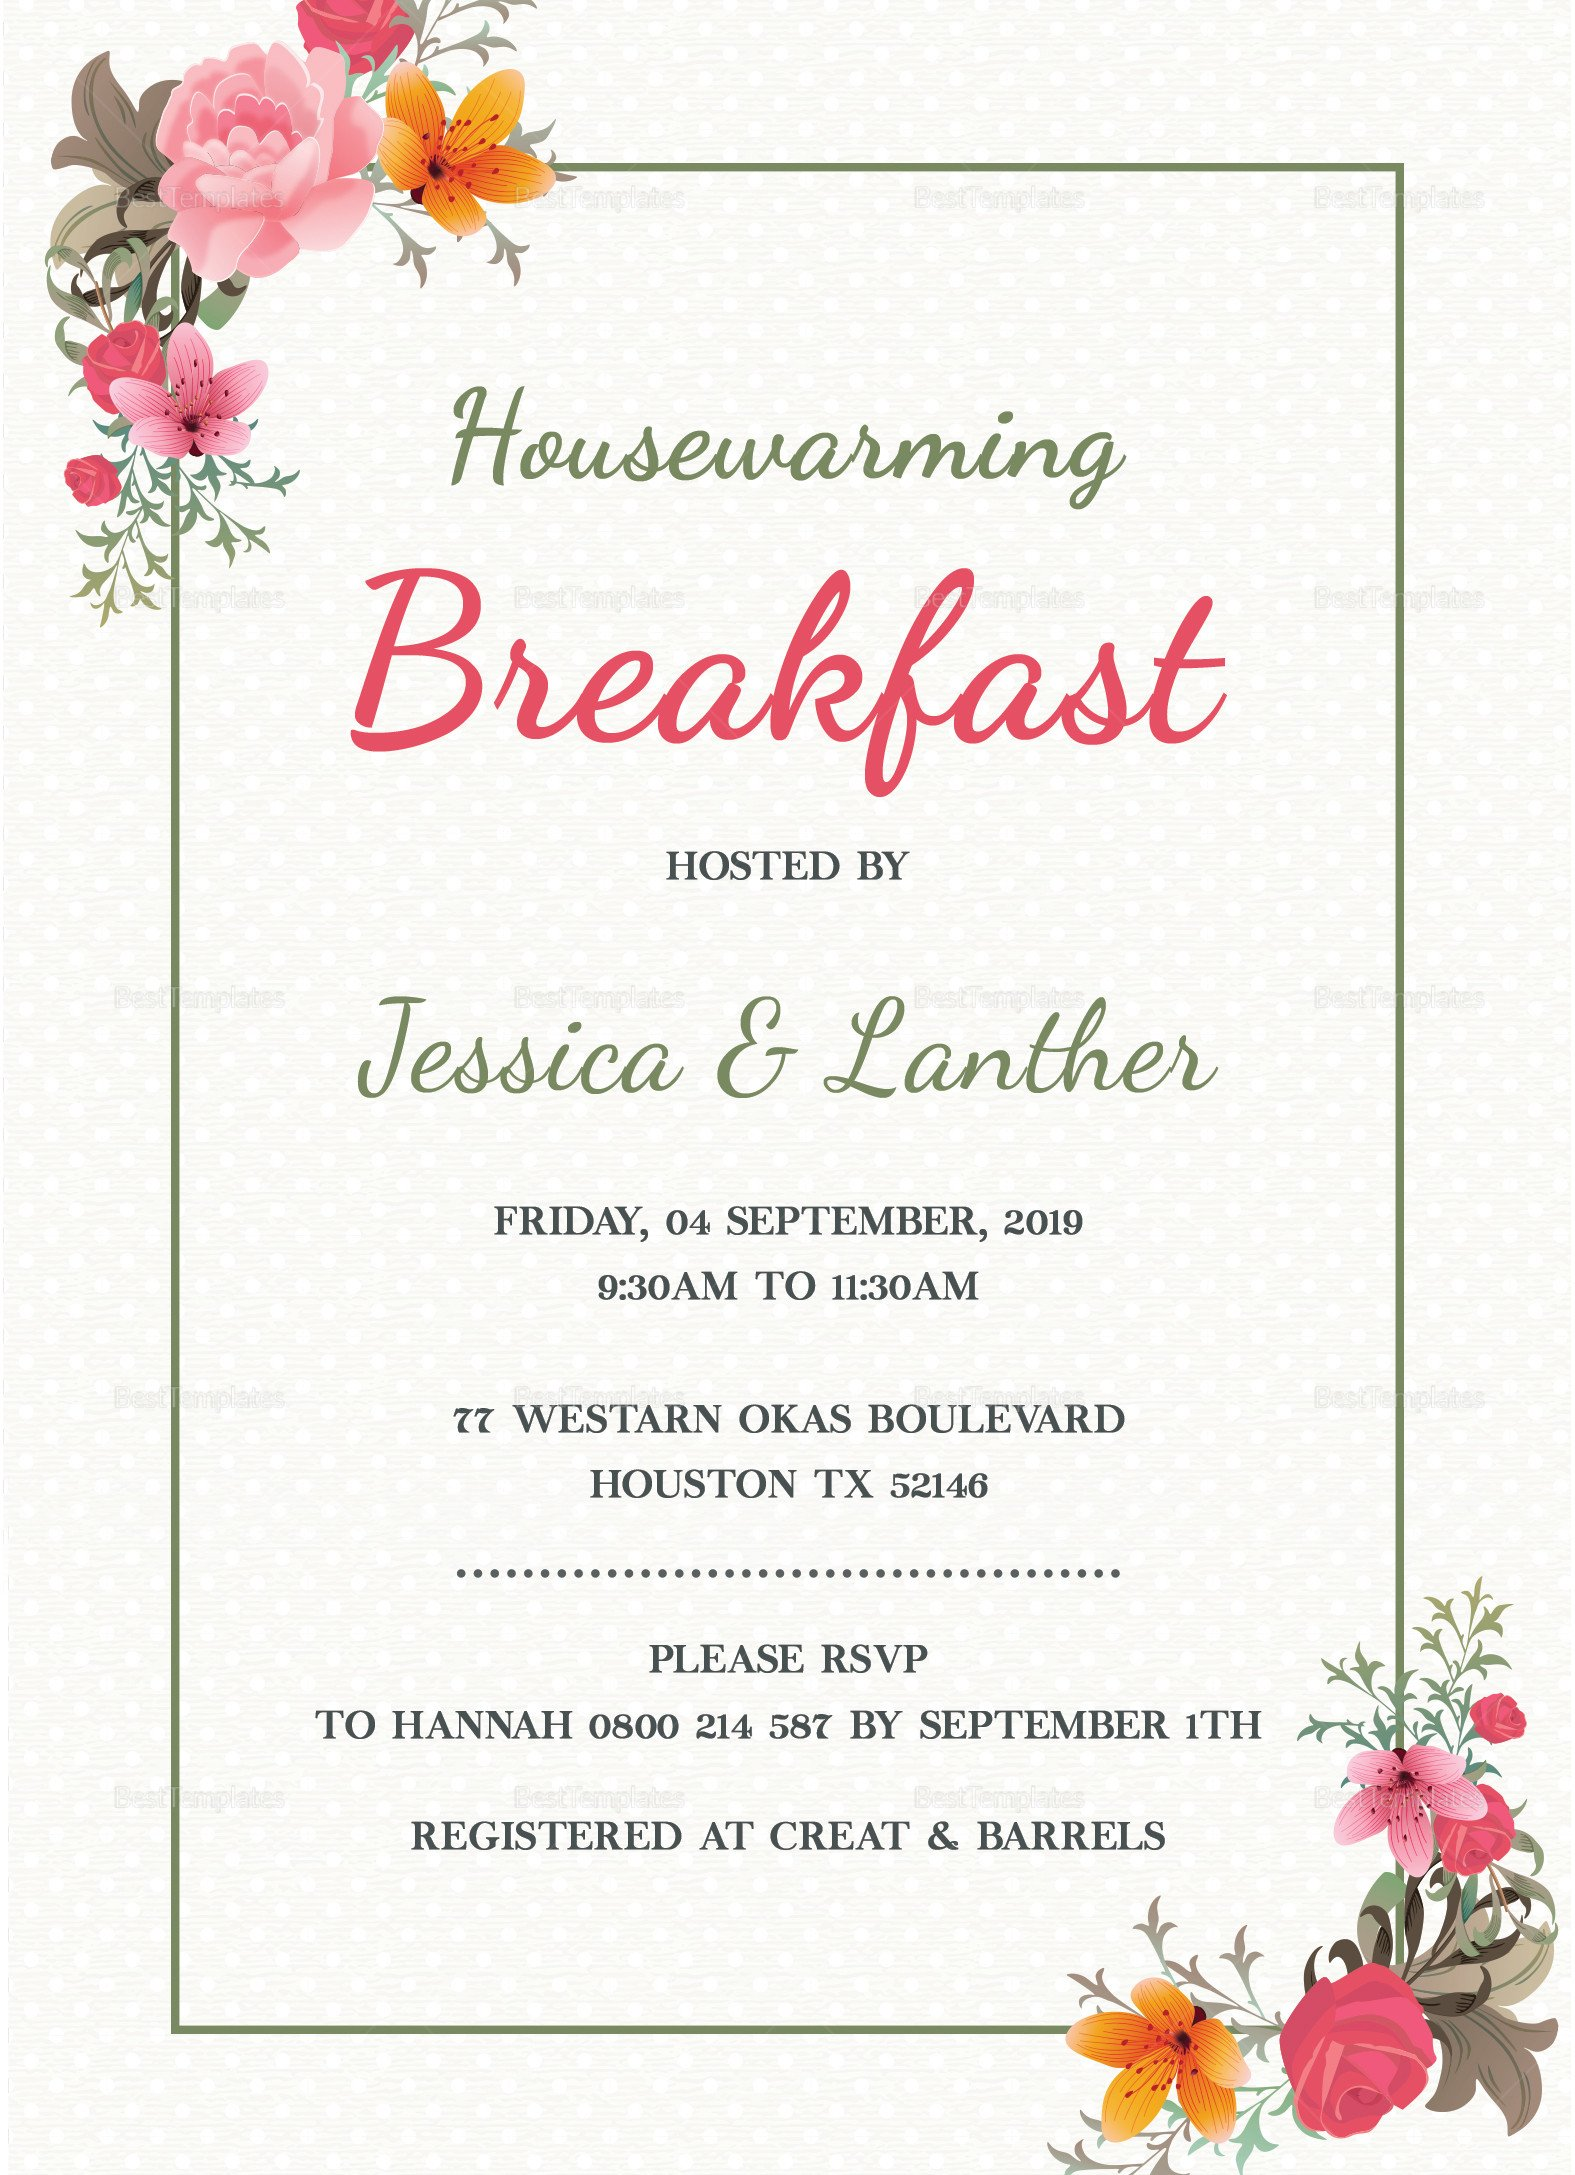 Housewarming Invitation Template Microsoft Word Housewarming Breakfast Party Invitation Design Template In